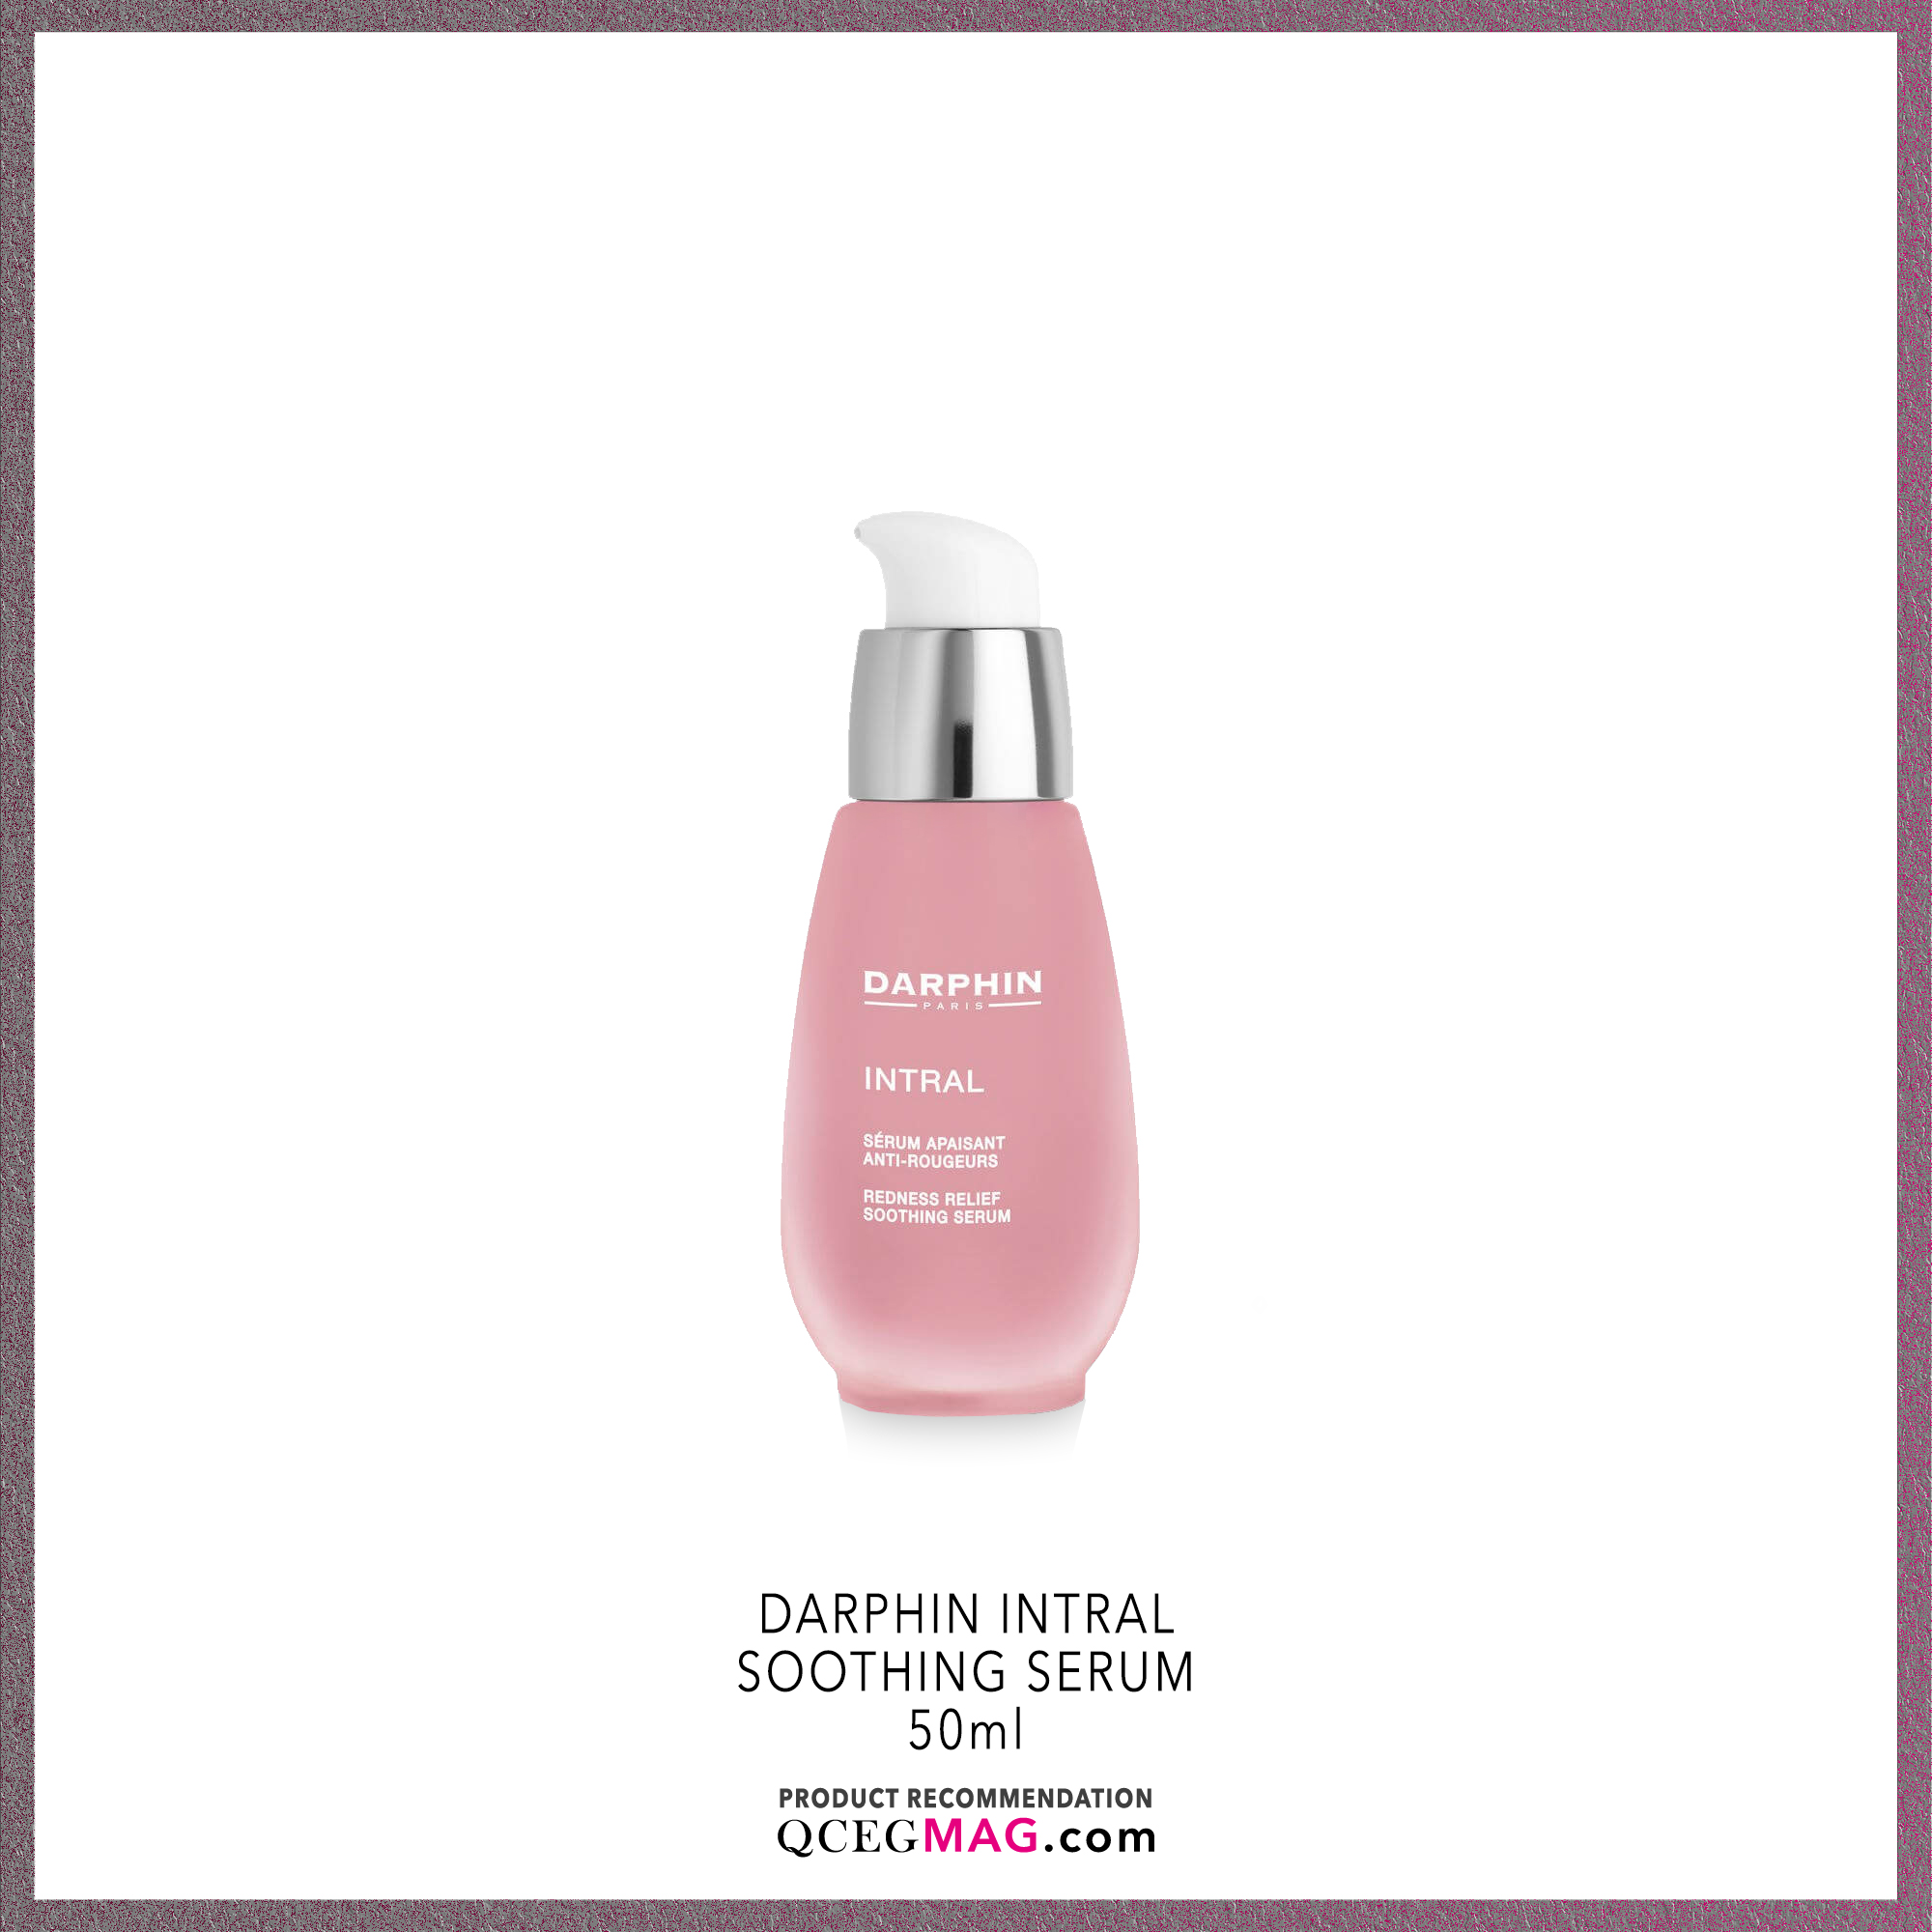 DARPHIN INTRAL - SOOTHING SERUM 50ml